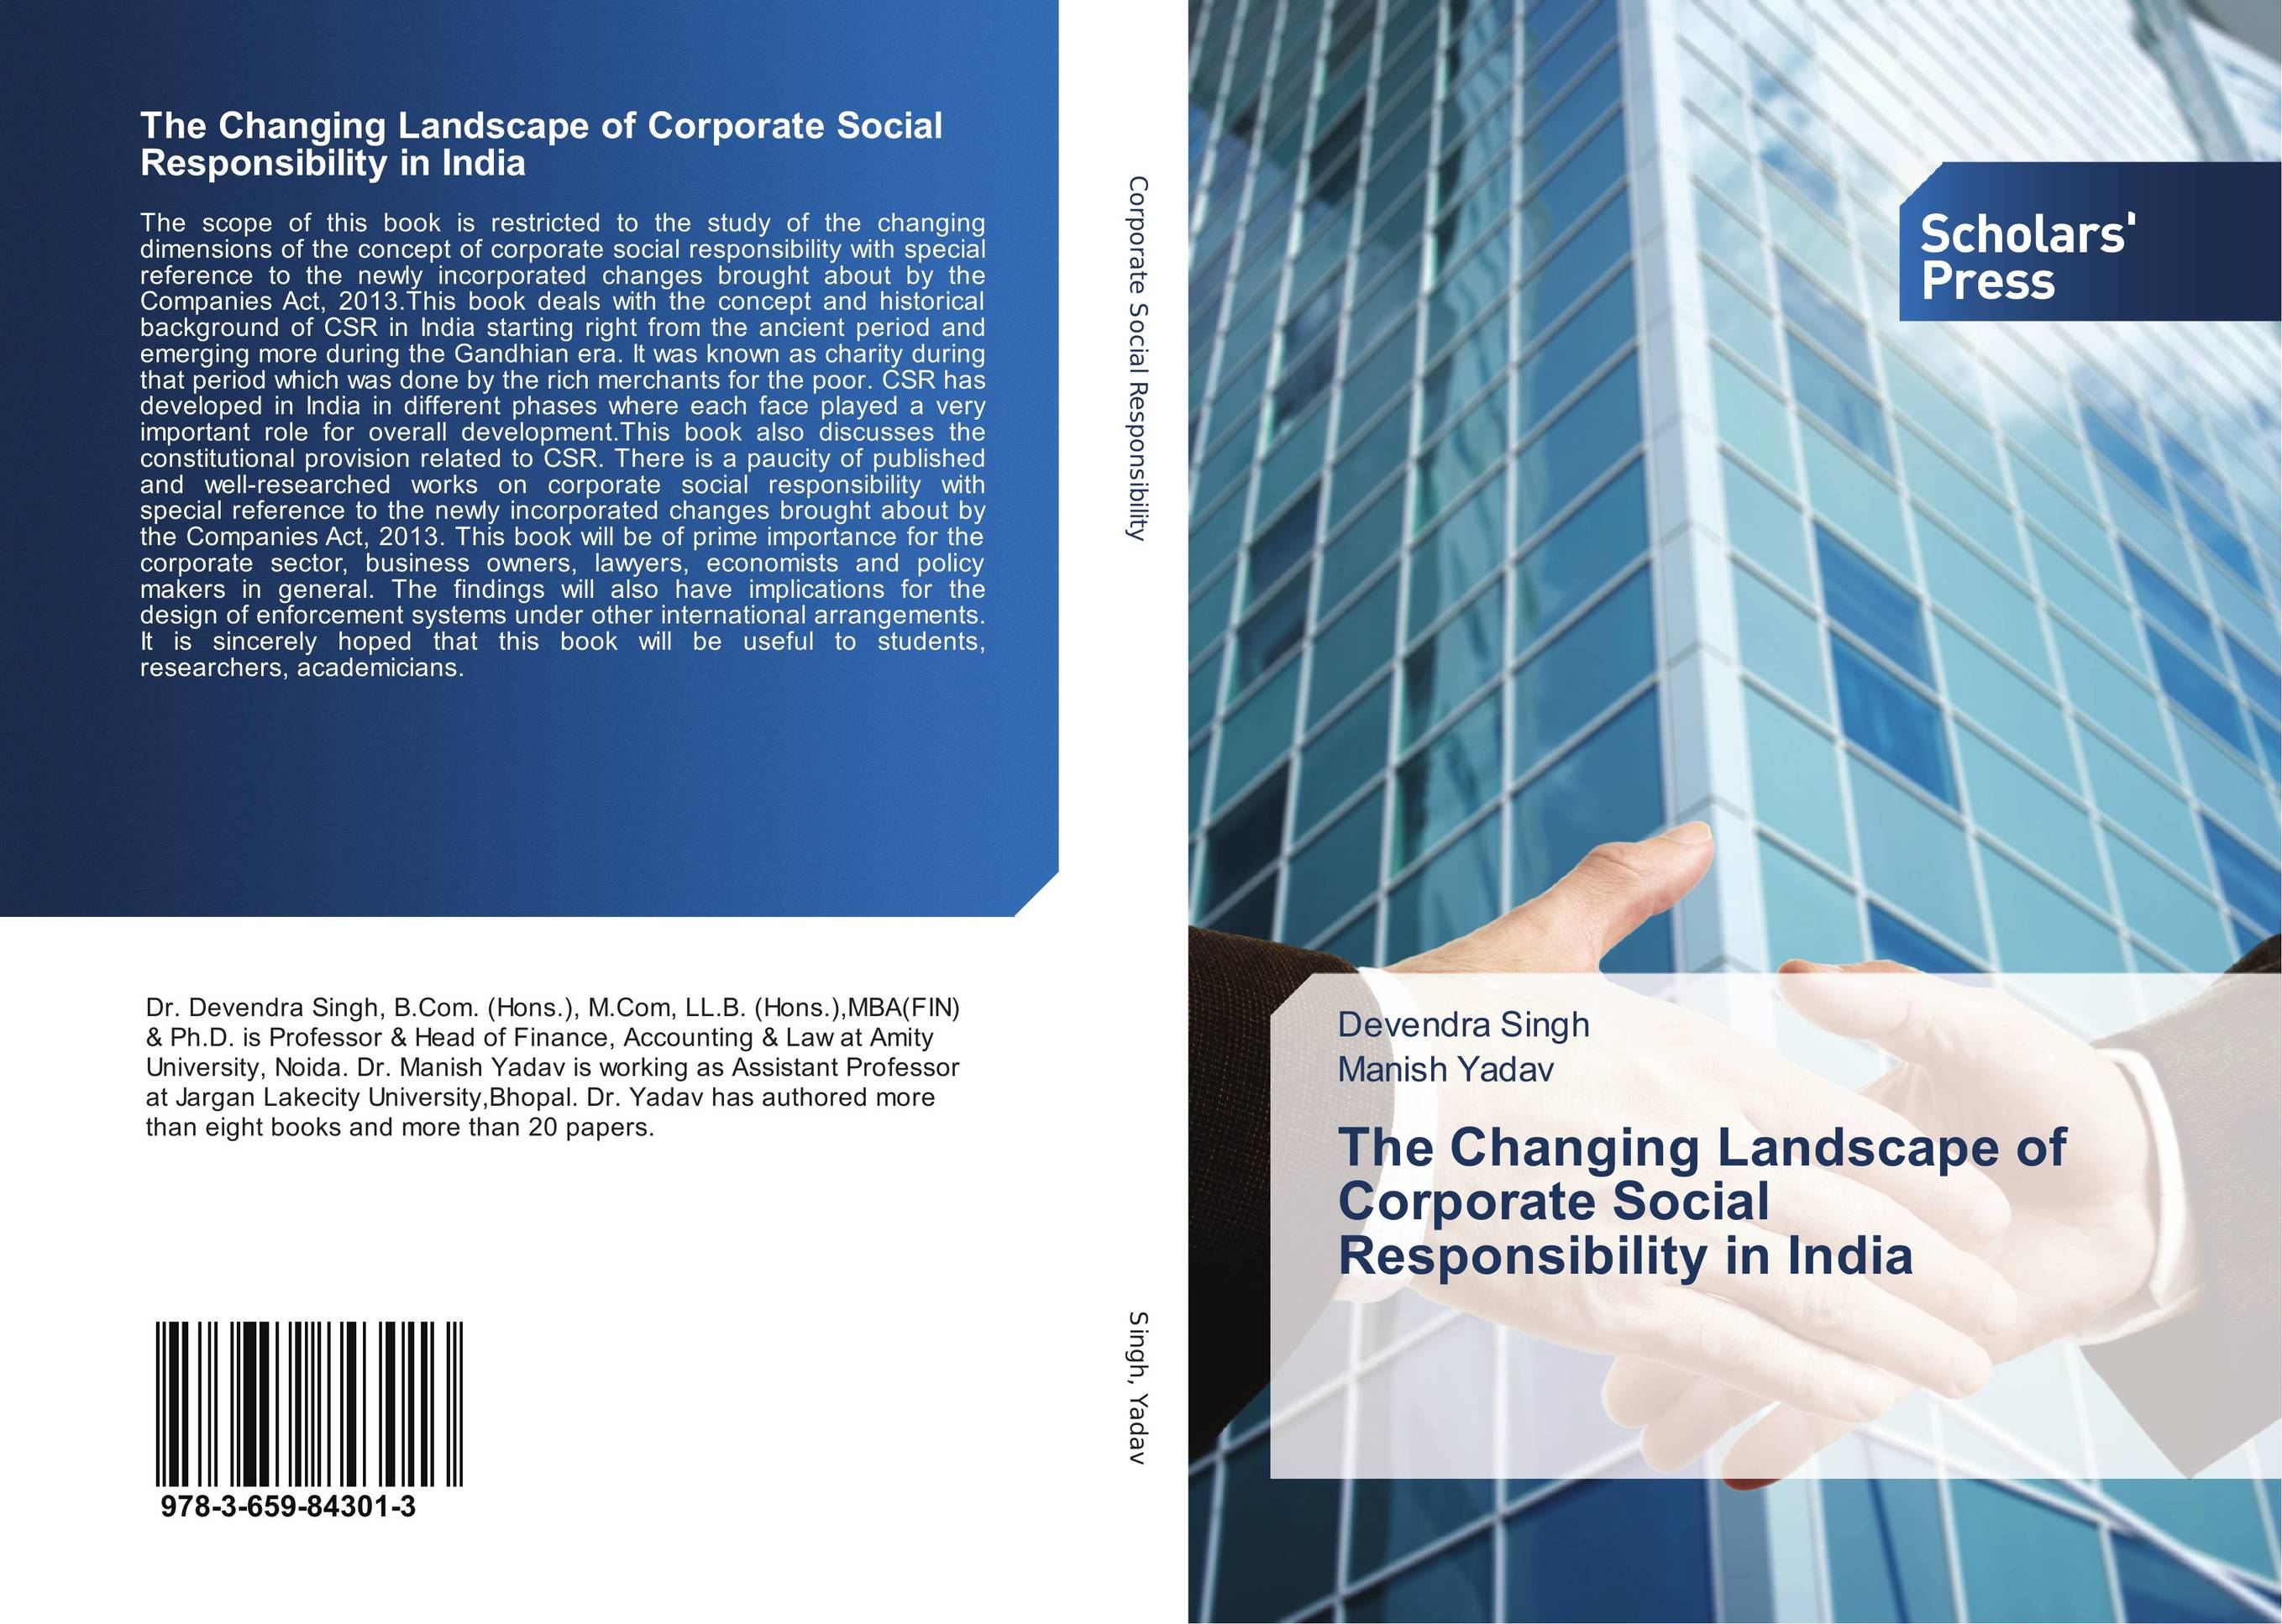 global economy and corporate responsibility essay This essay discusses the perplexities and challenges of corporate social responsibility (csr) the essay features the what, why, and how of csr.